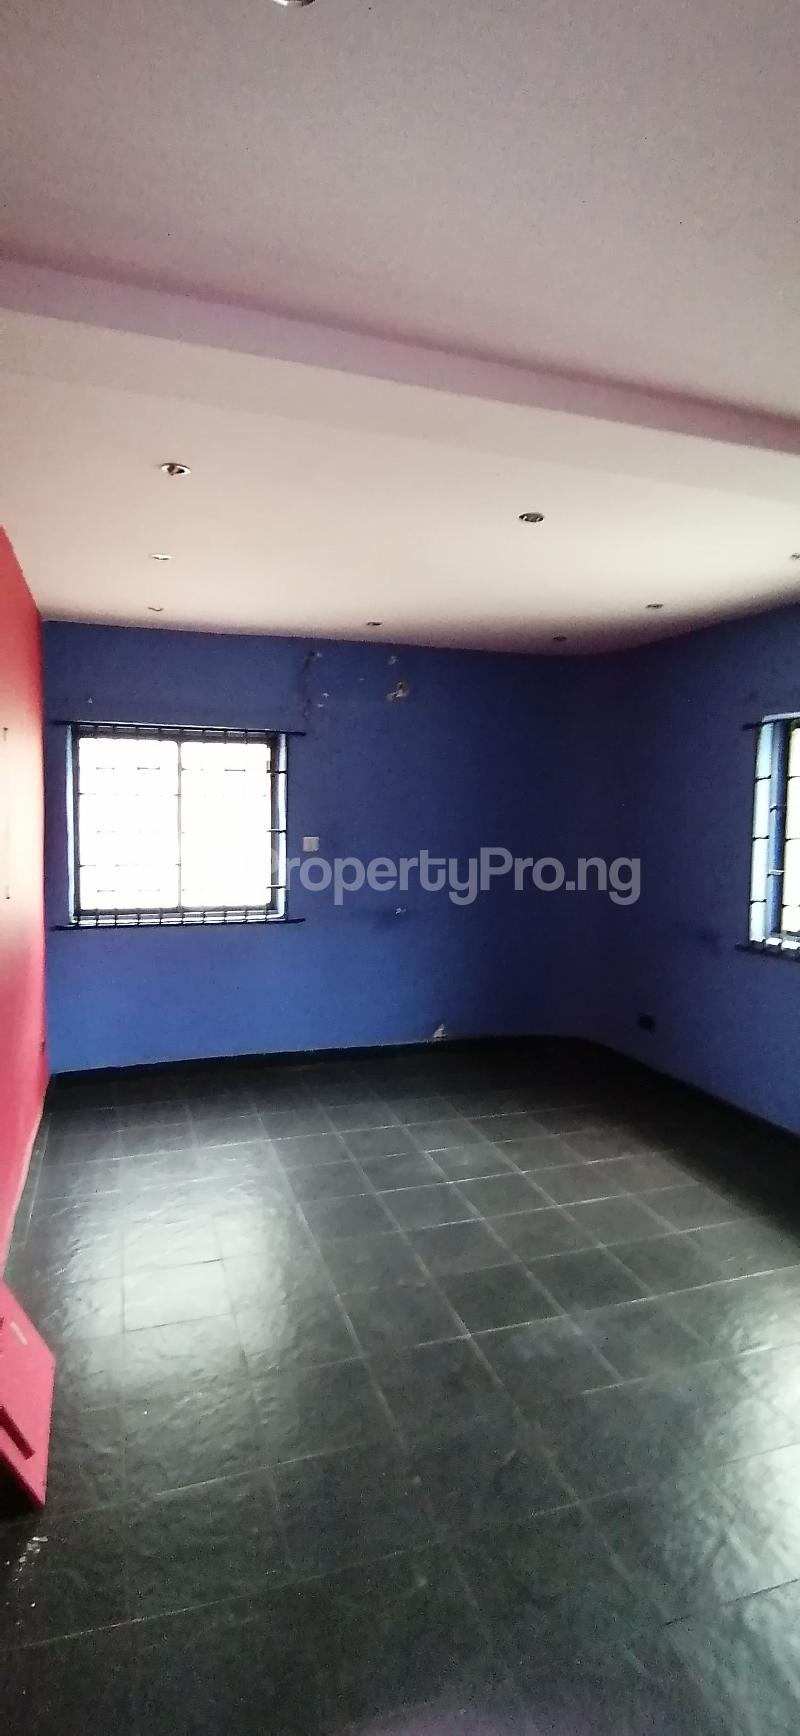 7 bedroom Detached Duplex House for rent Chief Augustine Anozie Lekki Phase 1 Lekki Lagos - 8